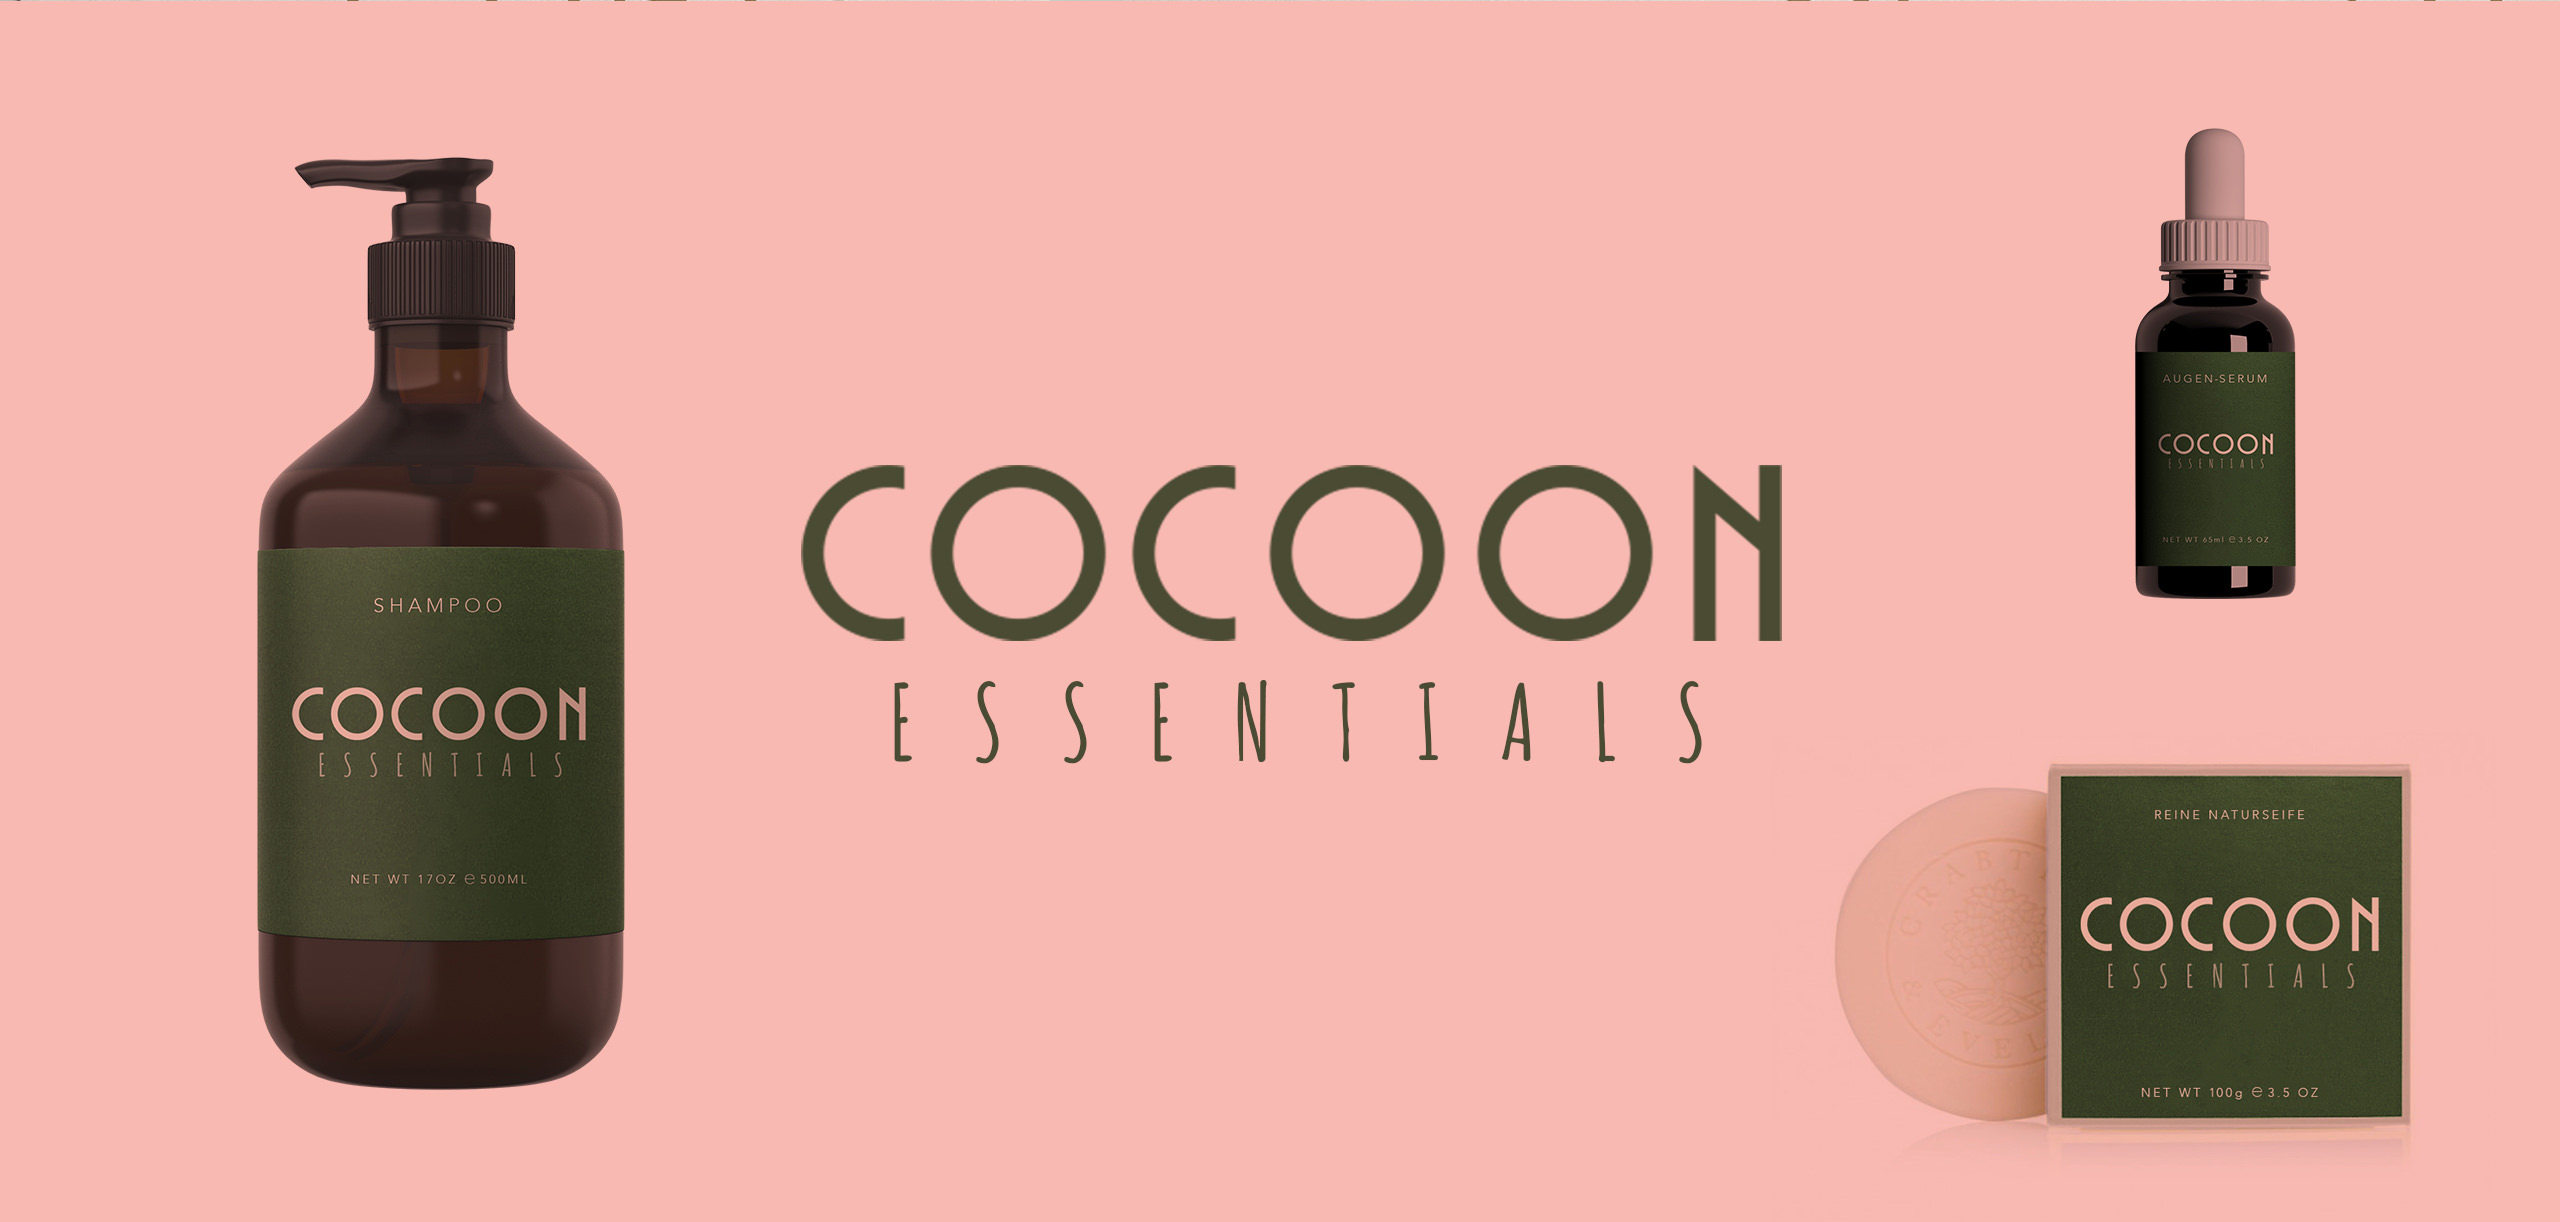 cocoon_essentials